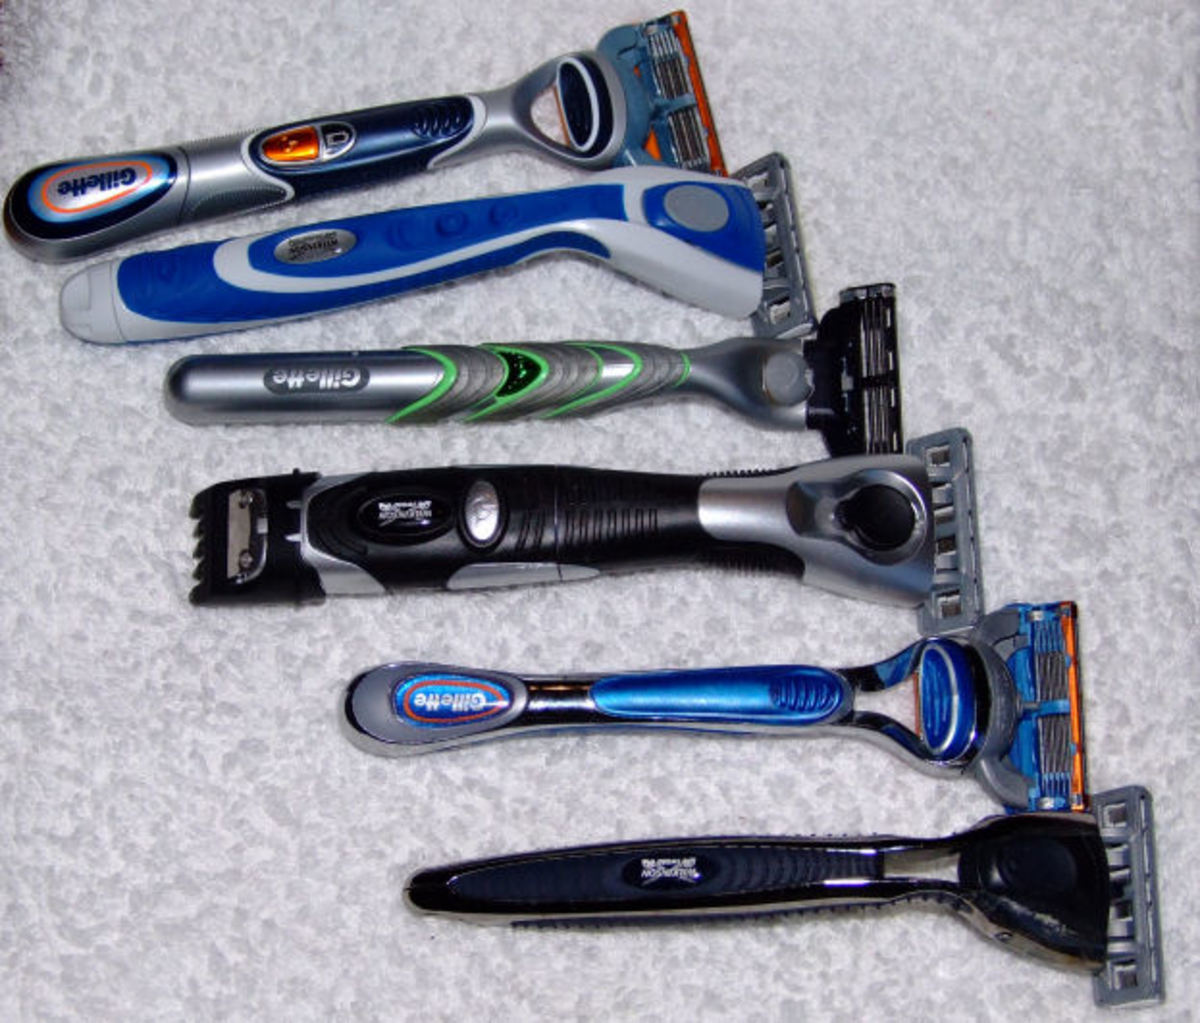 Razor Array Top to Bottom Gillette Fusion Power Wilkinson. Sword Quattro Energy. Gillette Mach3. Quattro Titanium freestyle. Gillette fusion (not powered). Wilkinson Sword Quattro (not powered)